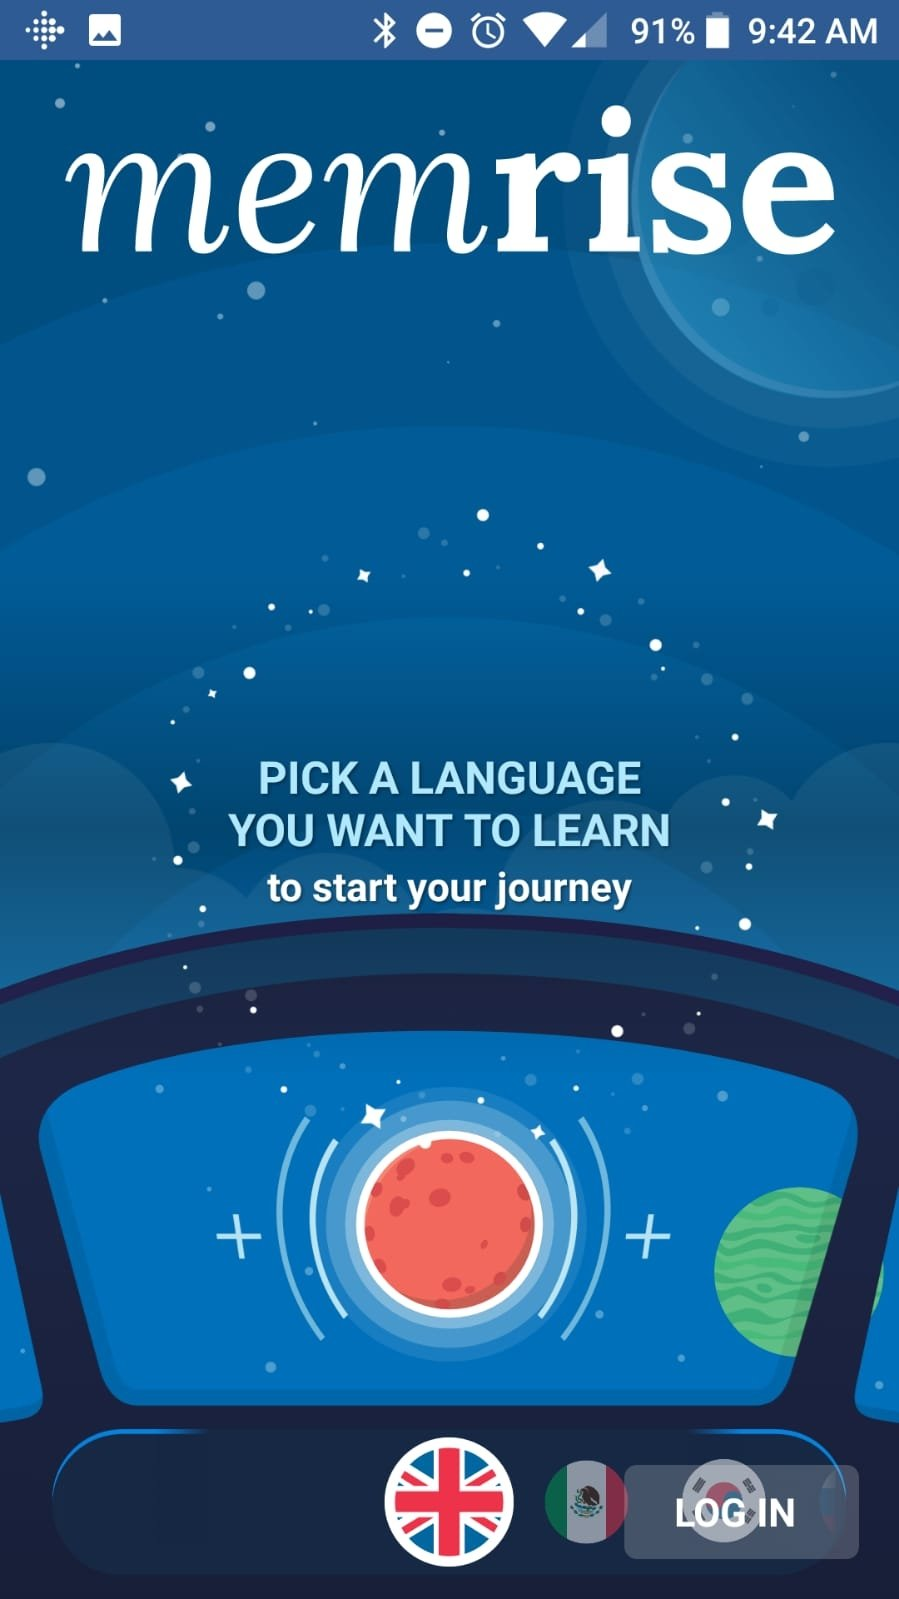 Memrise Android image 5